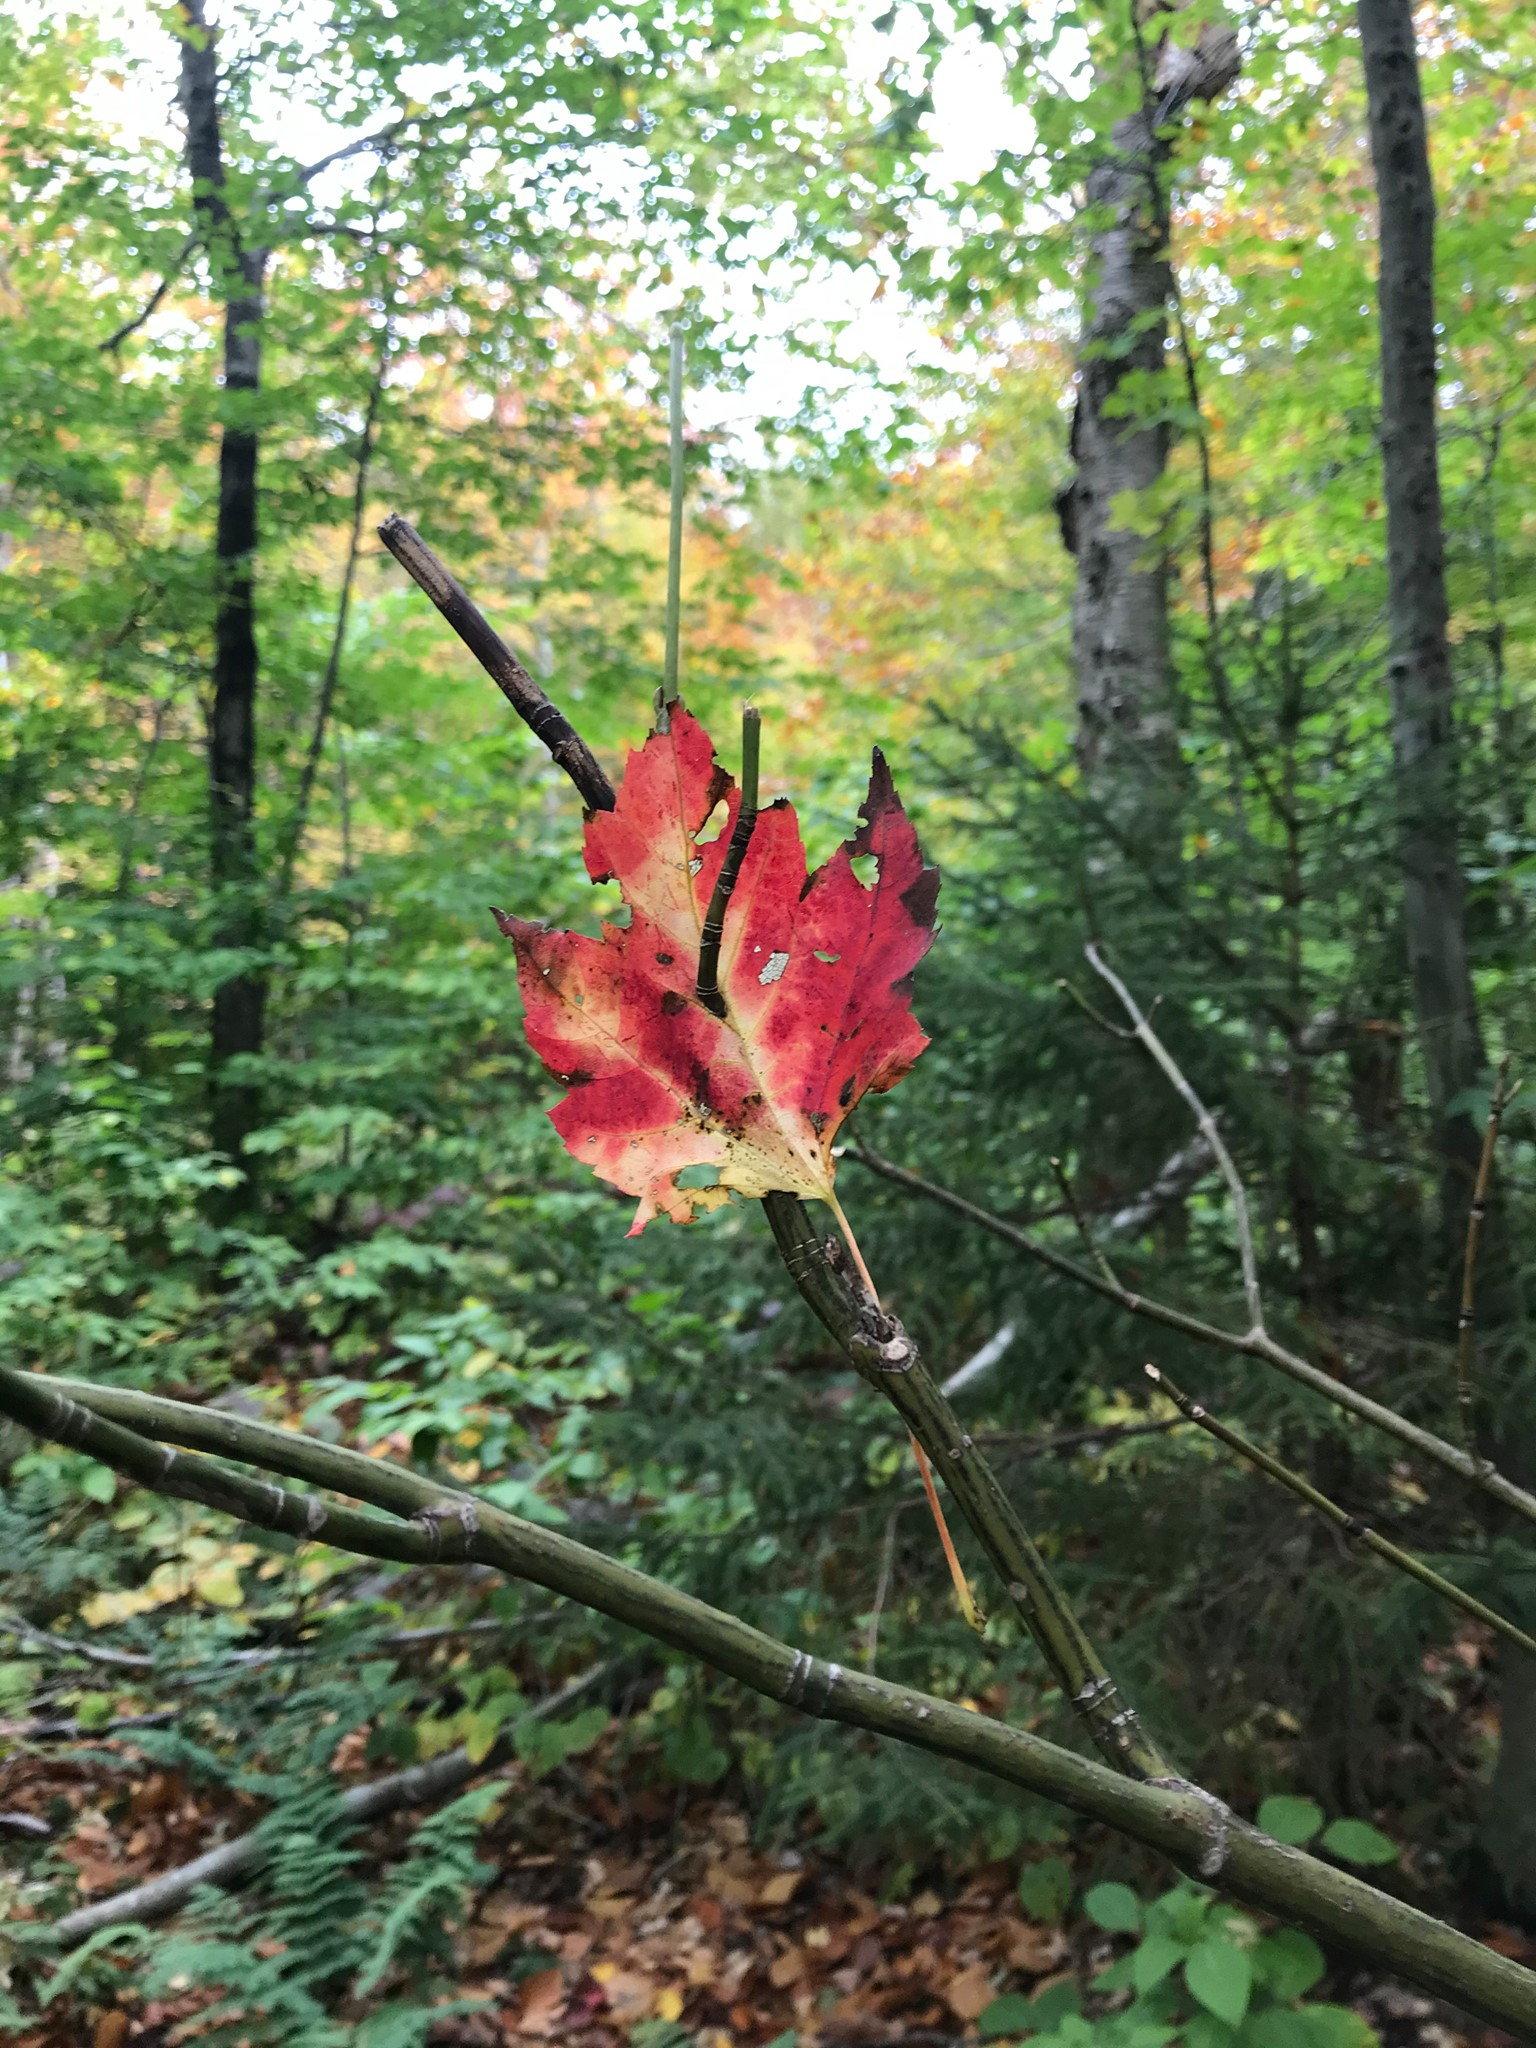 Contest Entry #19 - Rochester Red - Single red and yellow leaf on a stick framed by a mostly green forest